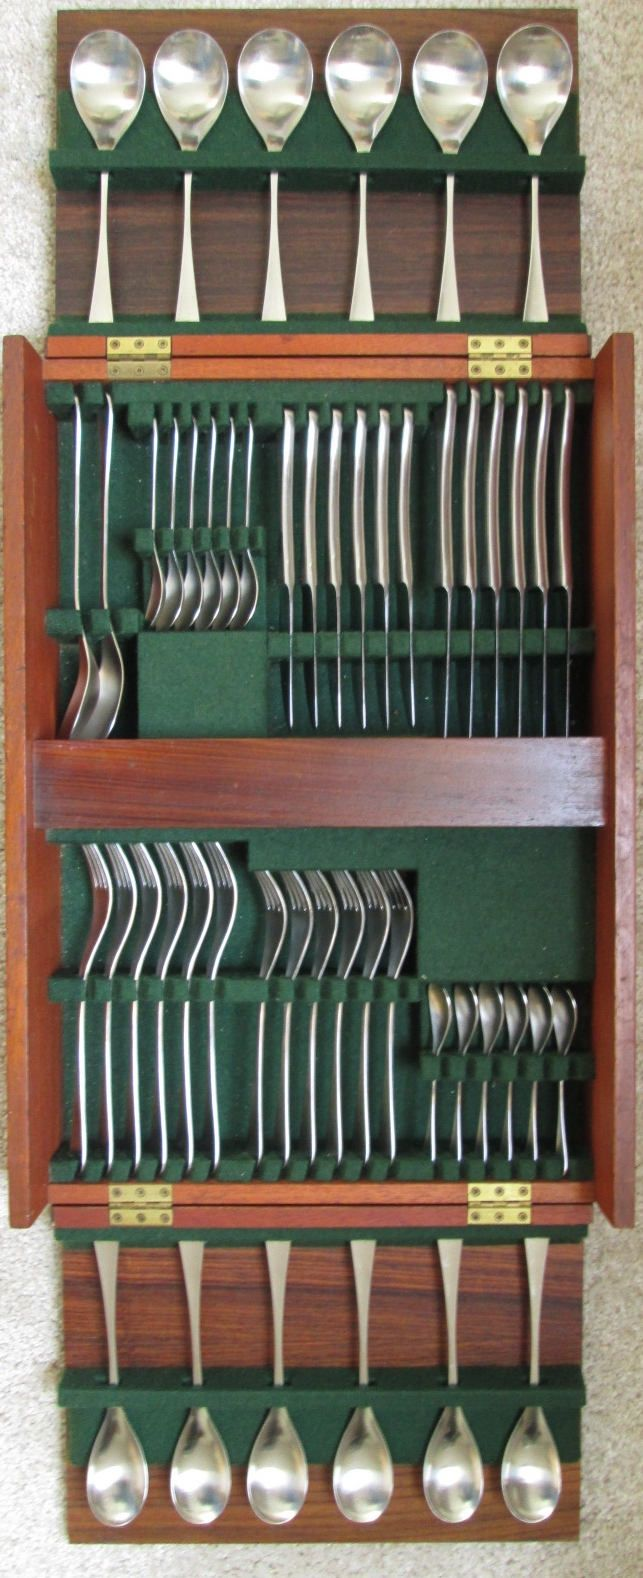 1960s stylish Alveston 50 pc flatware / cutlery designed by Robert Welch for Old Hall, in original teak / rosewood canteen by SCALDESIGN on Etsy